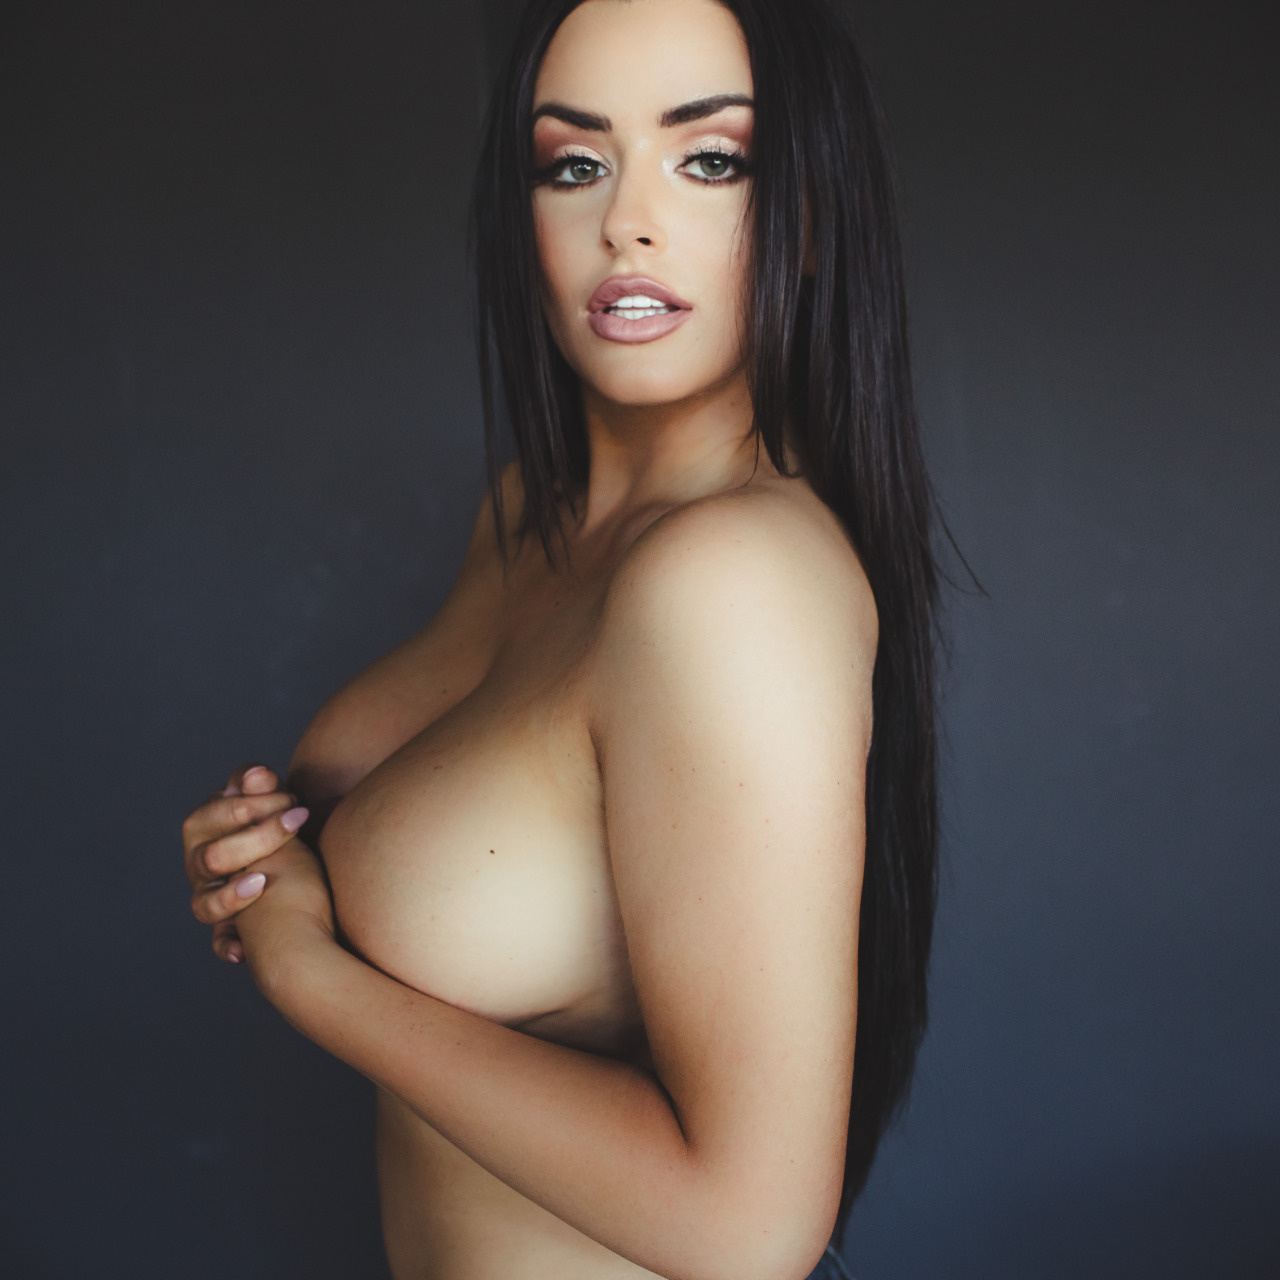 Abigail ratchford nude images